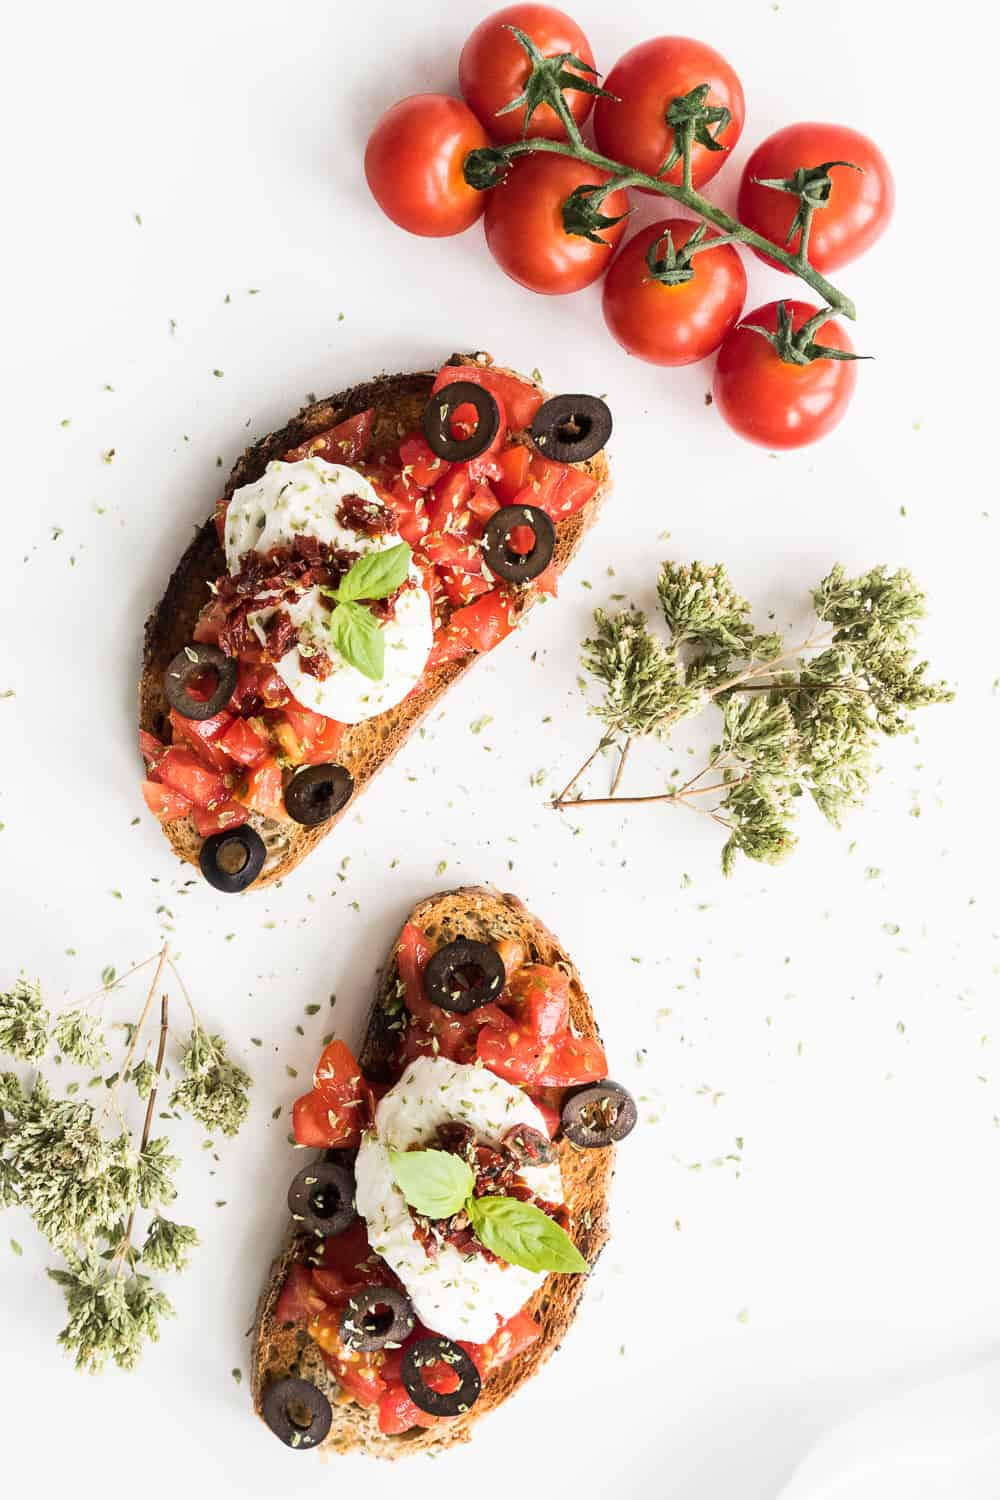 Gathering Dreams Bruschetta with Mozzarella